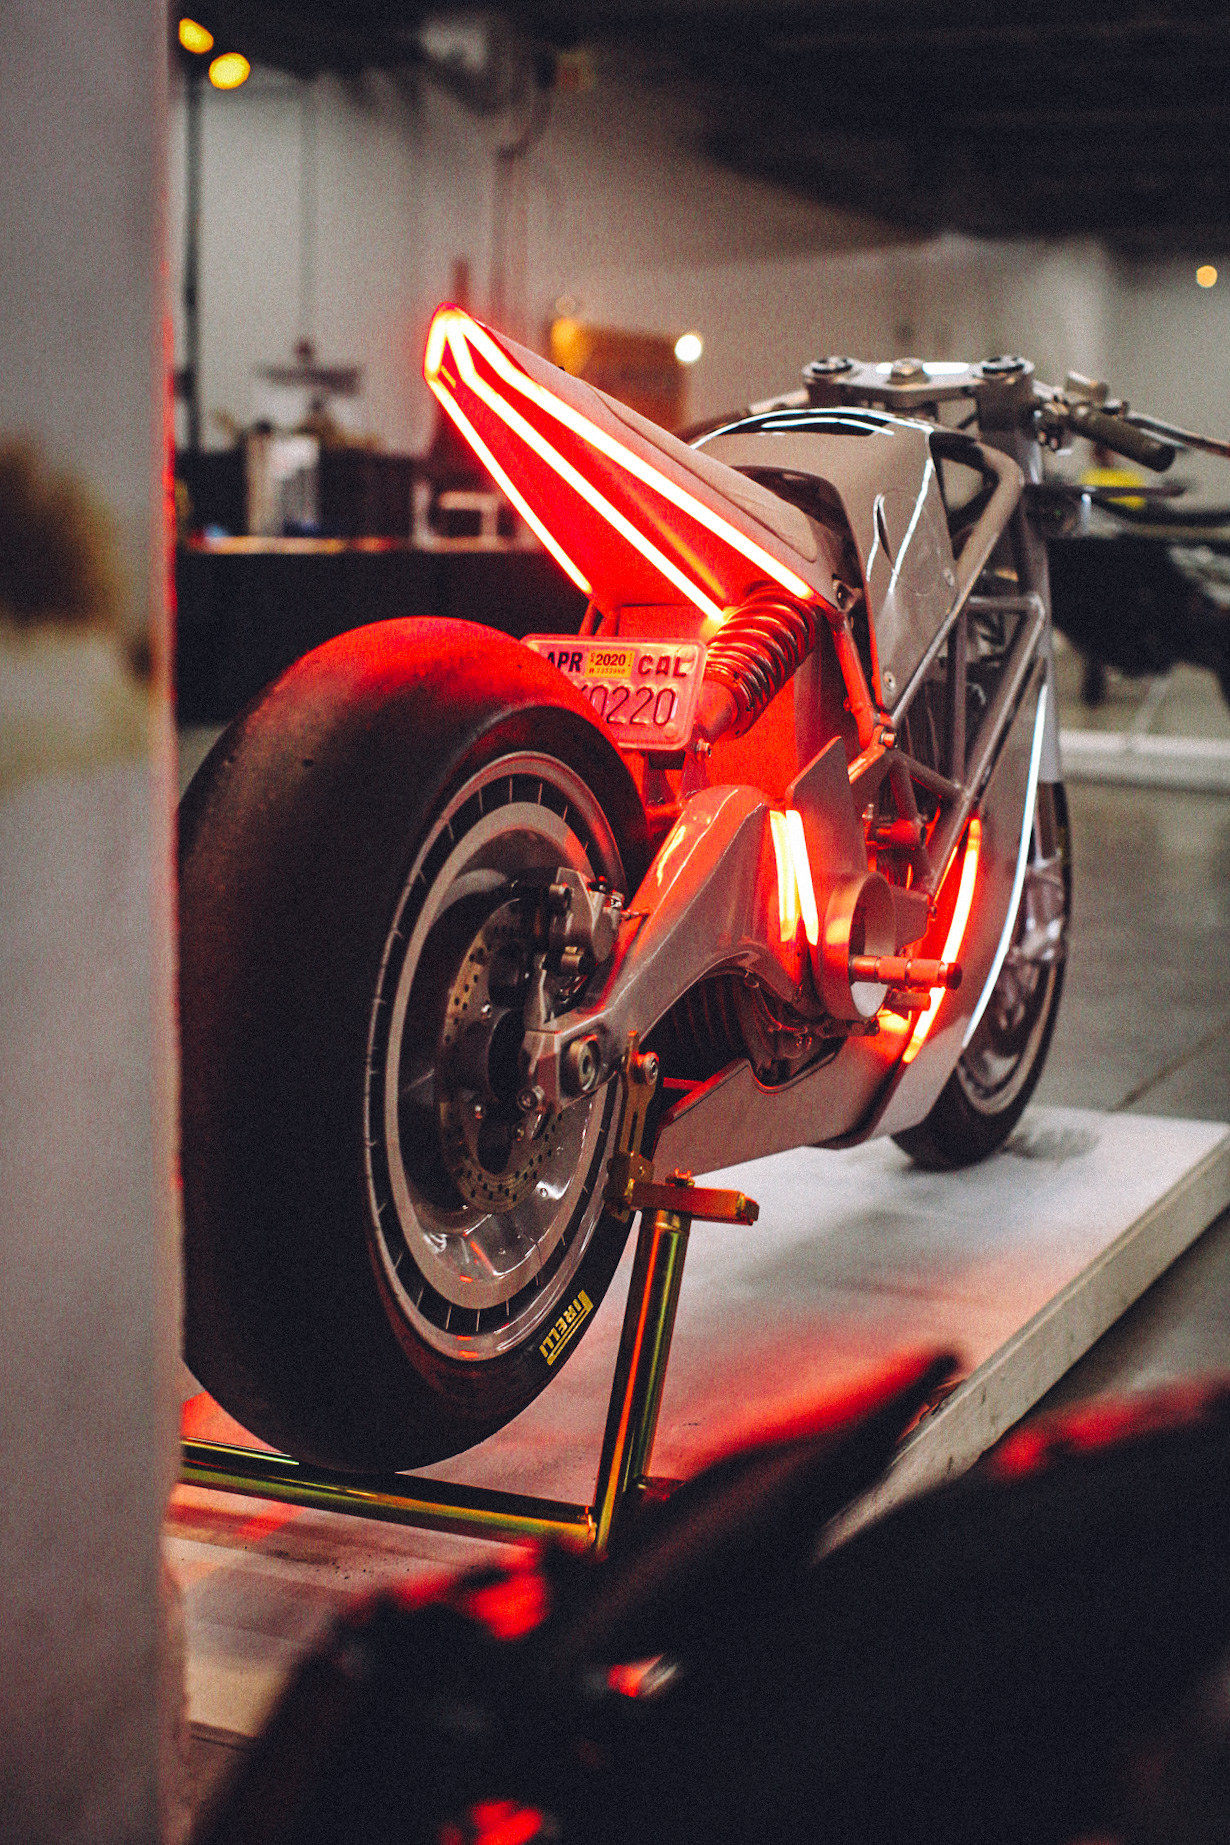 Futuristic tail on Hugo Eccles Zero XP at The One Motorcycle Show